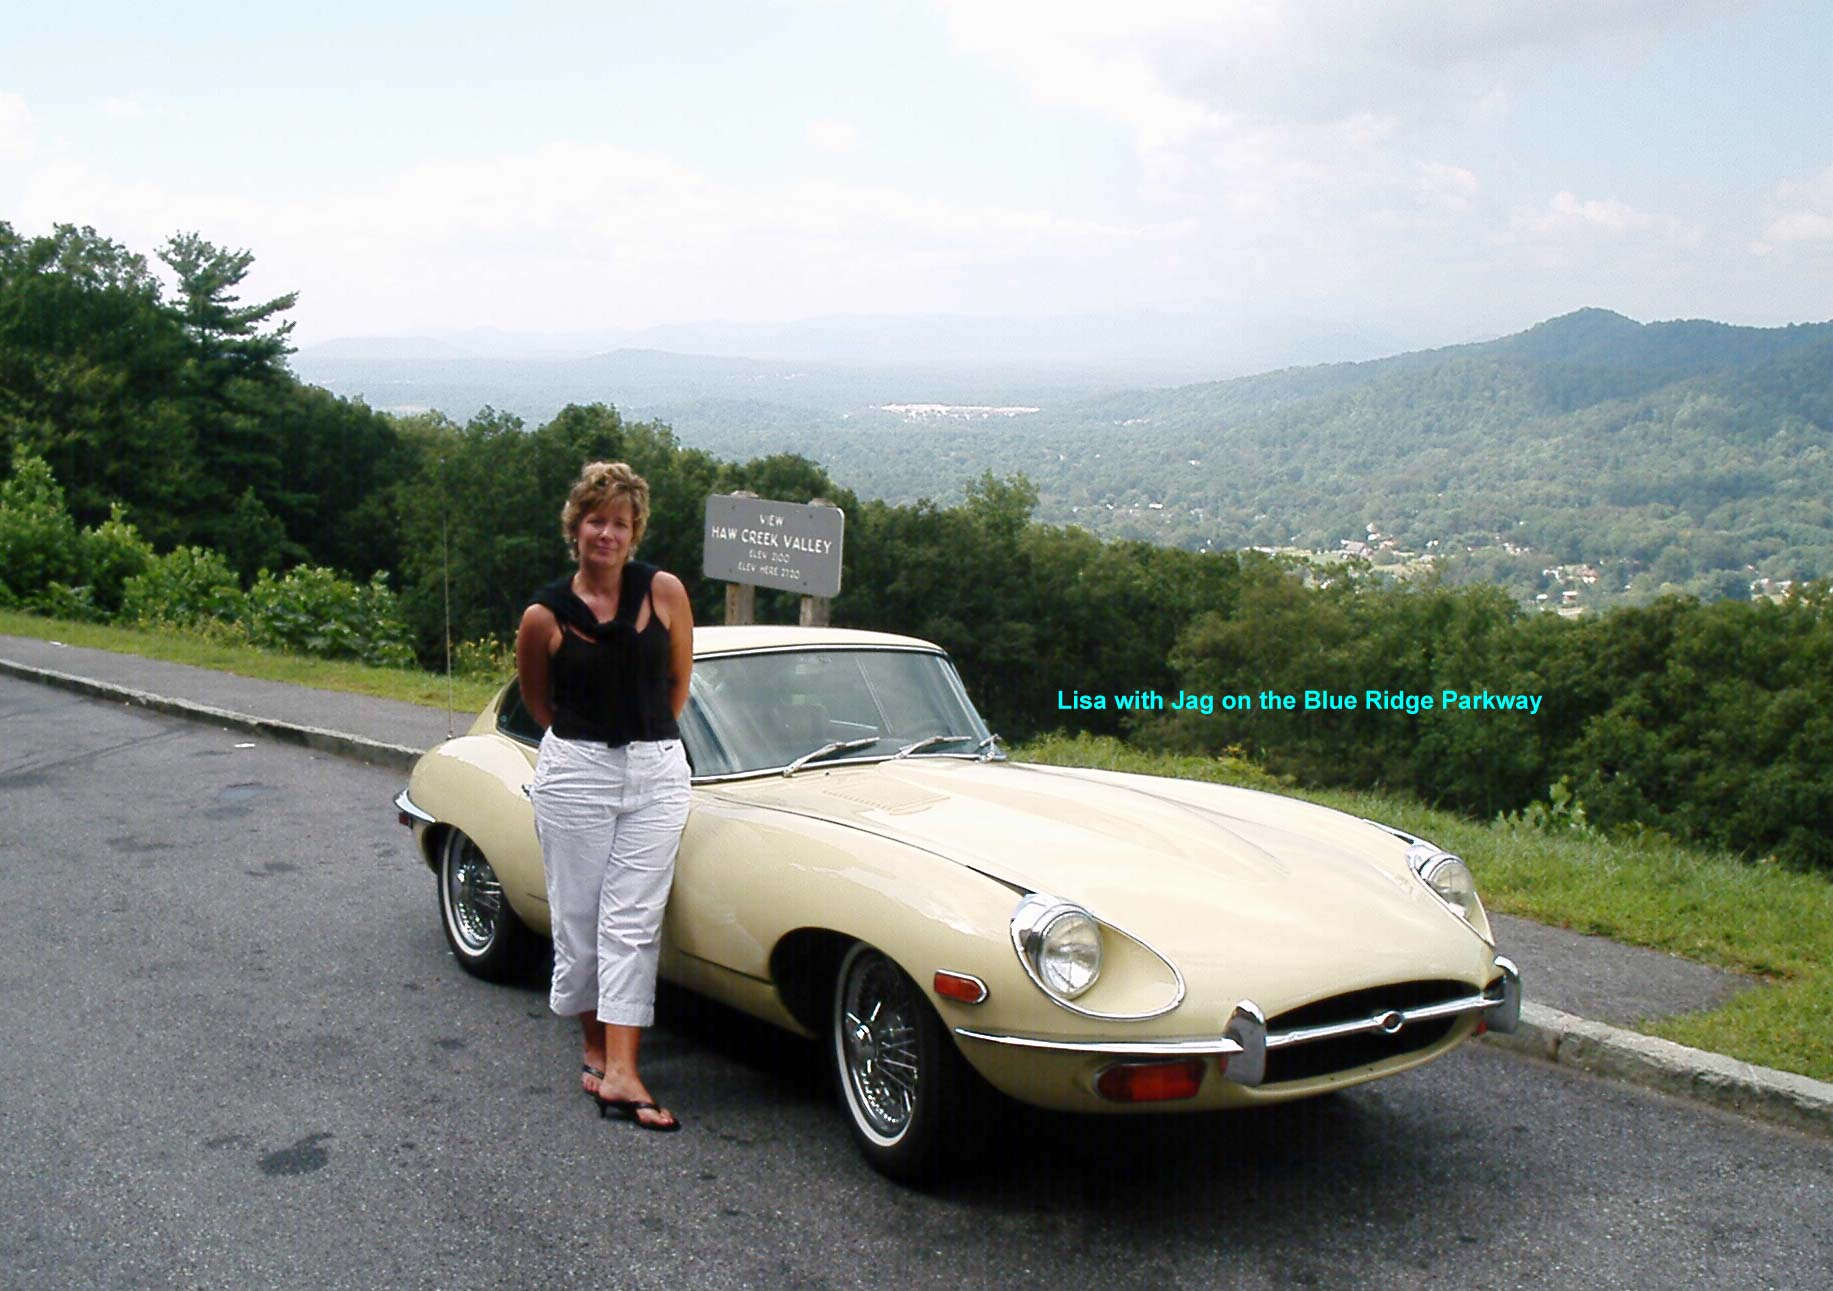 Lisa with the Jag on the Blue Ridge Parkway